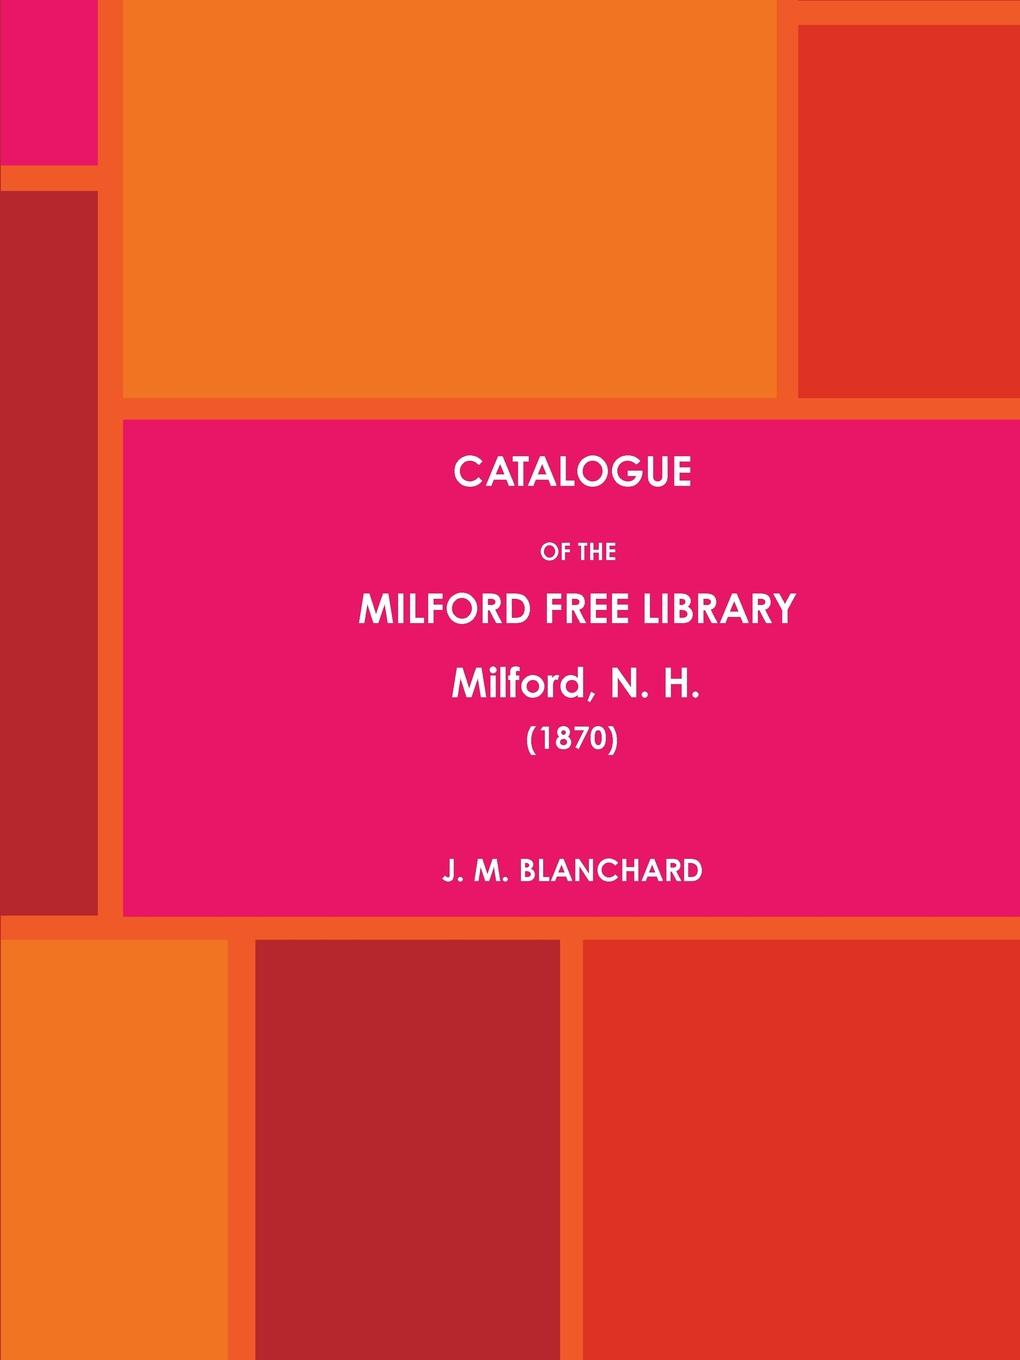 J. M. BLANCHARD CATALOGUE OF THE MILFORD FREE LIBRARY, Milford, N. H. (1870) timothy henderson j beyond borders a history of mexican migration to the united states